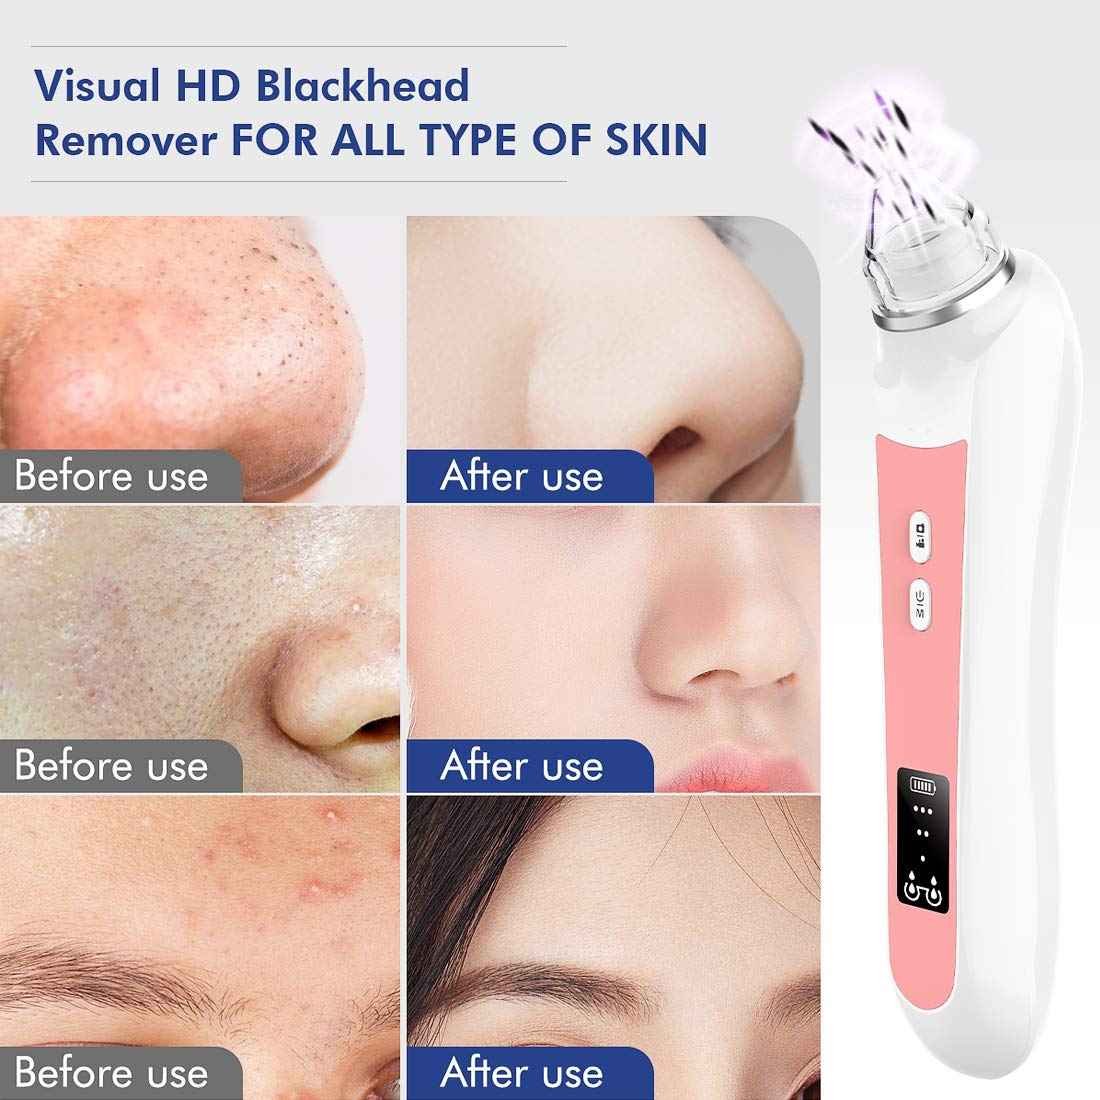 Precise - Blackhead Remover Vacuum With 6 Replaceable Probes Built-in Camera & WiFi real-time Skin Screen, USB Rechargeable